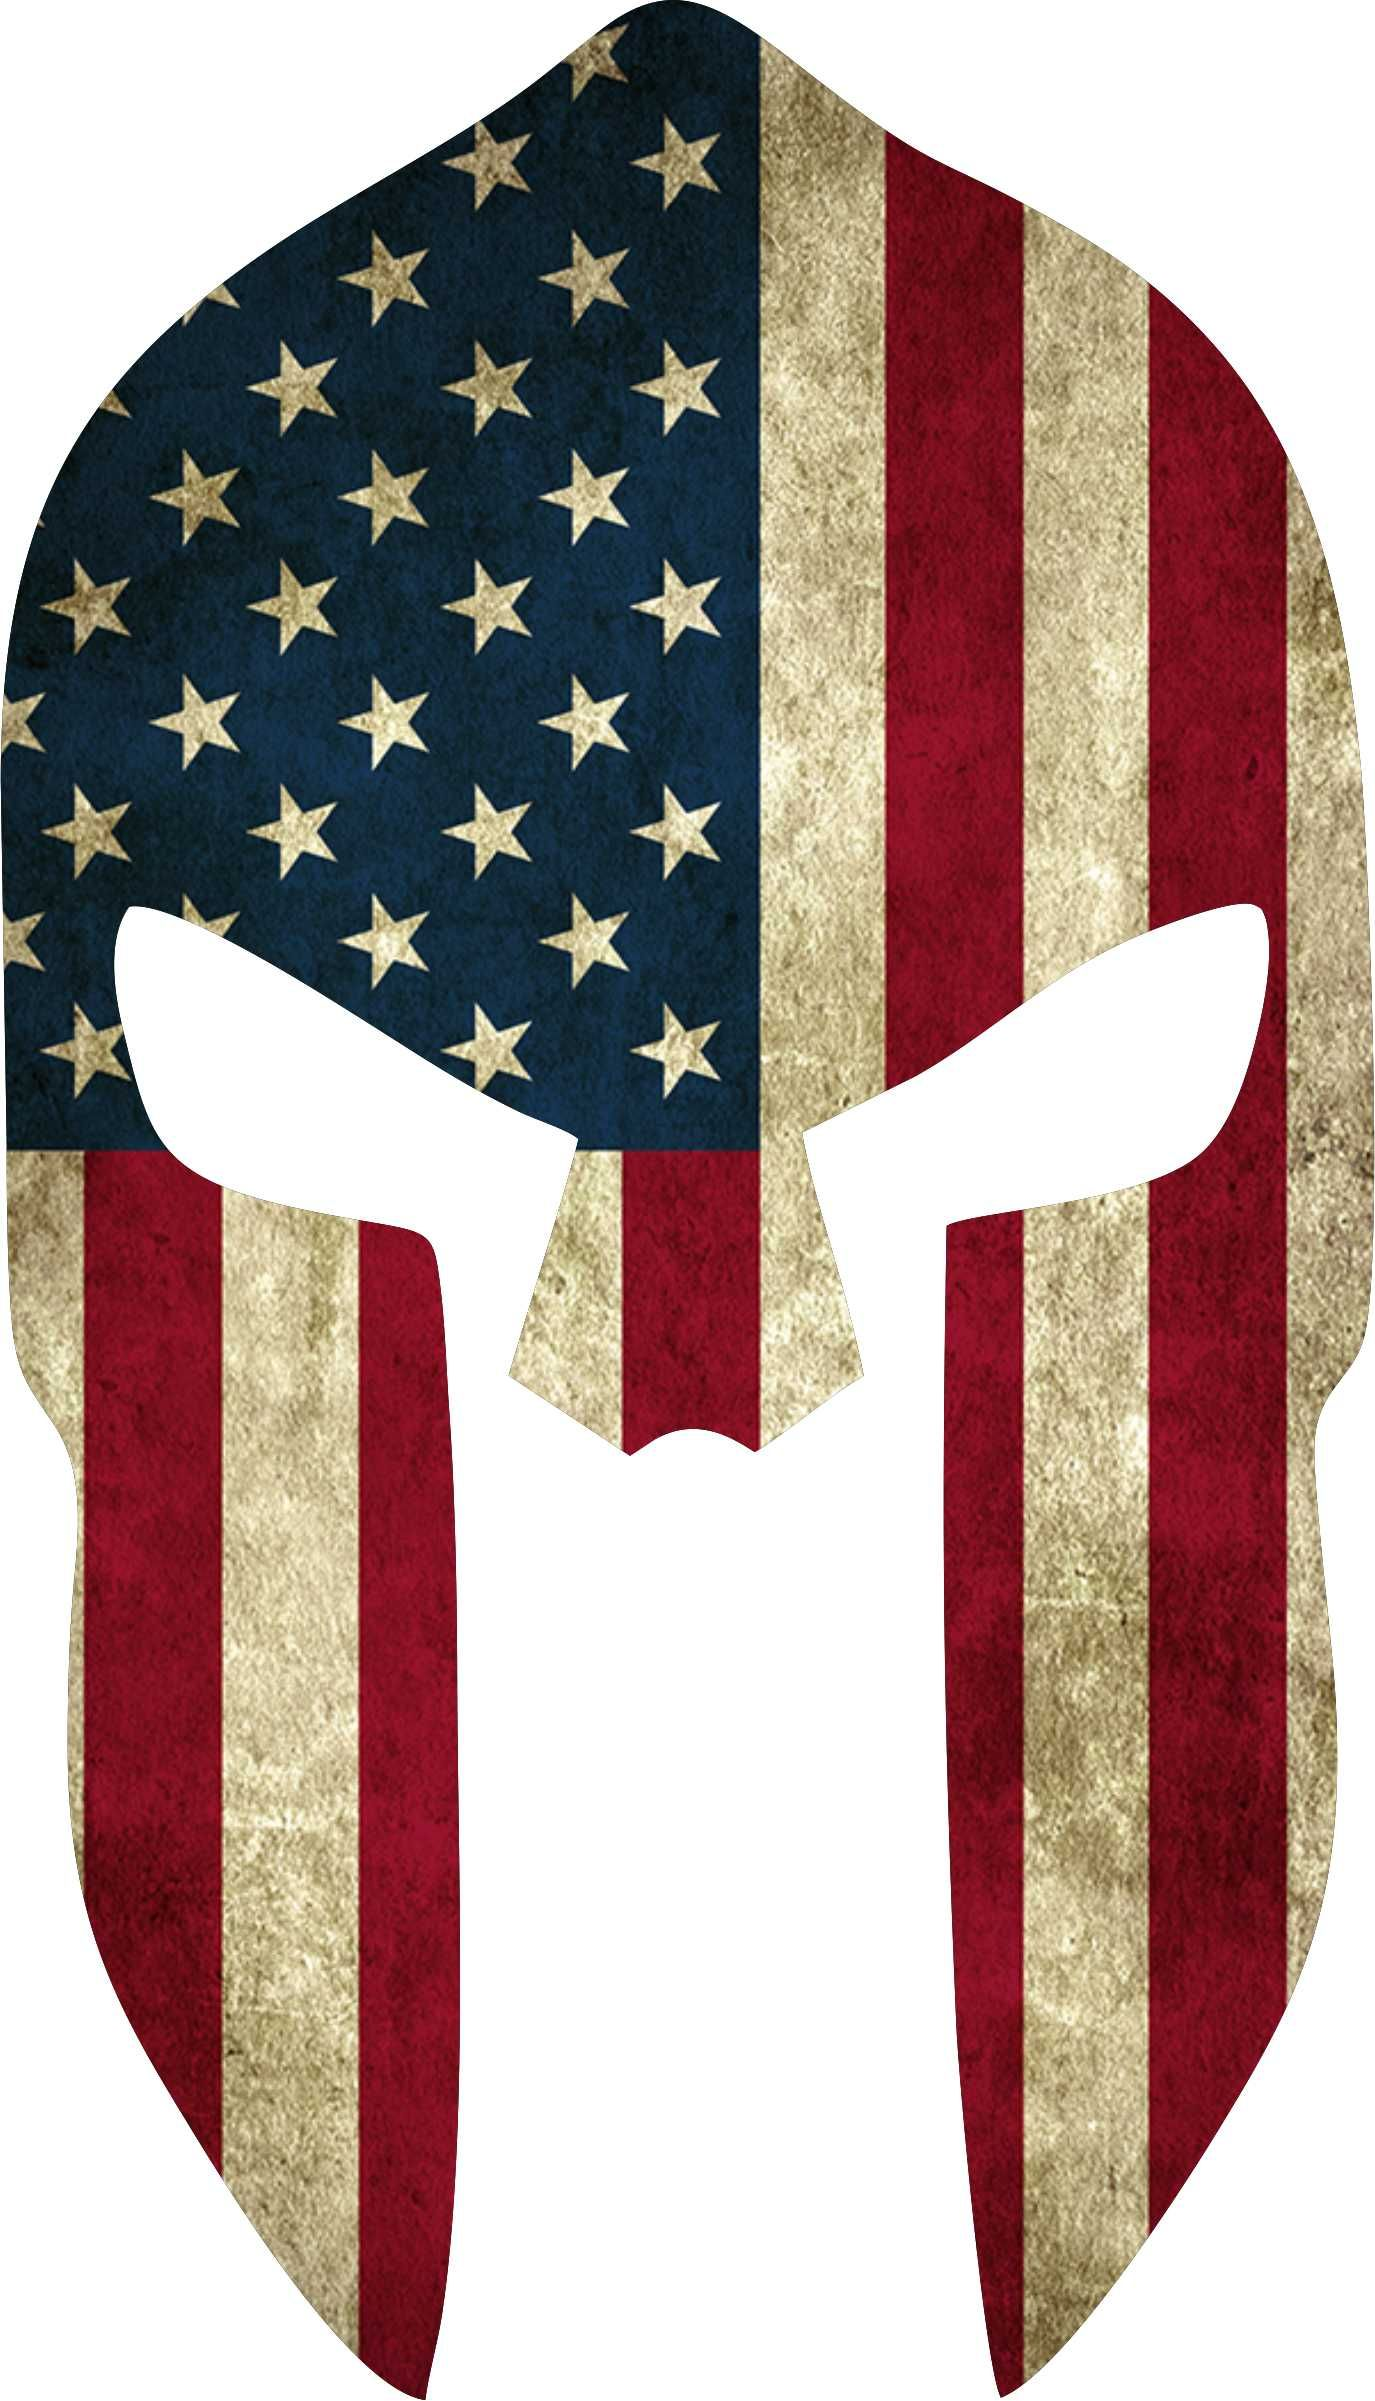 American flag spartan helmet google search